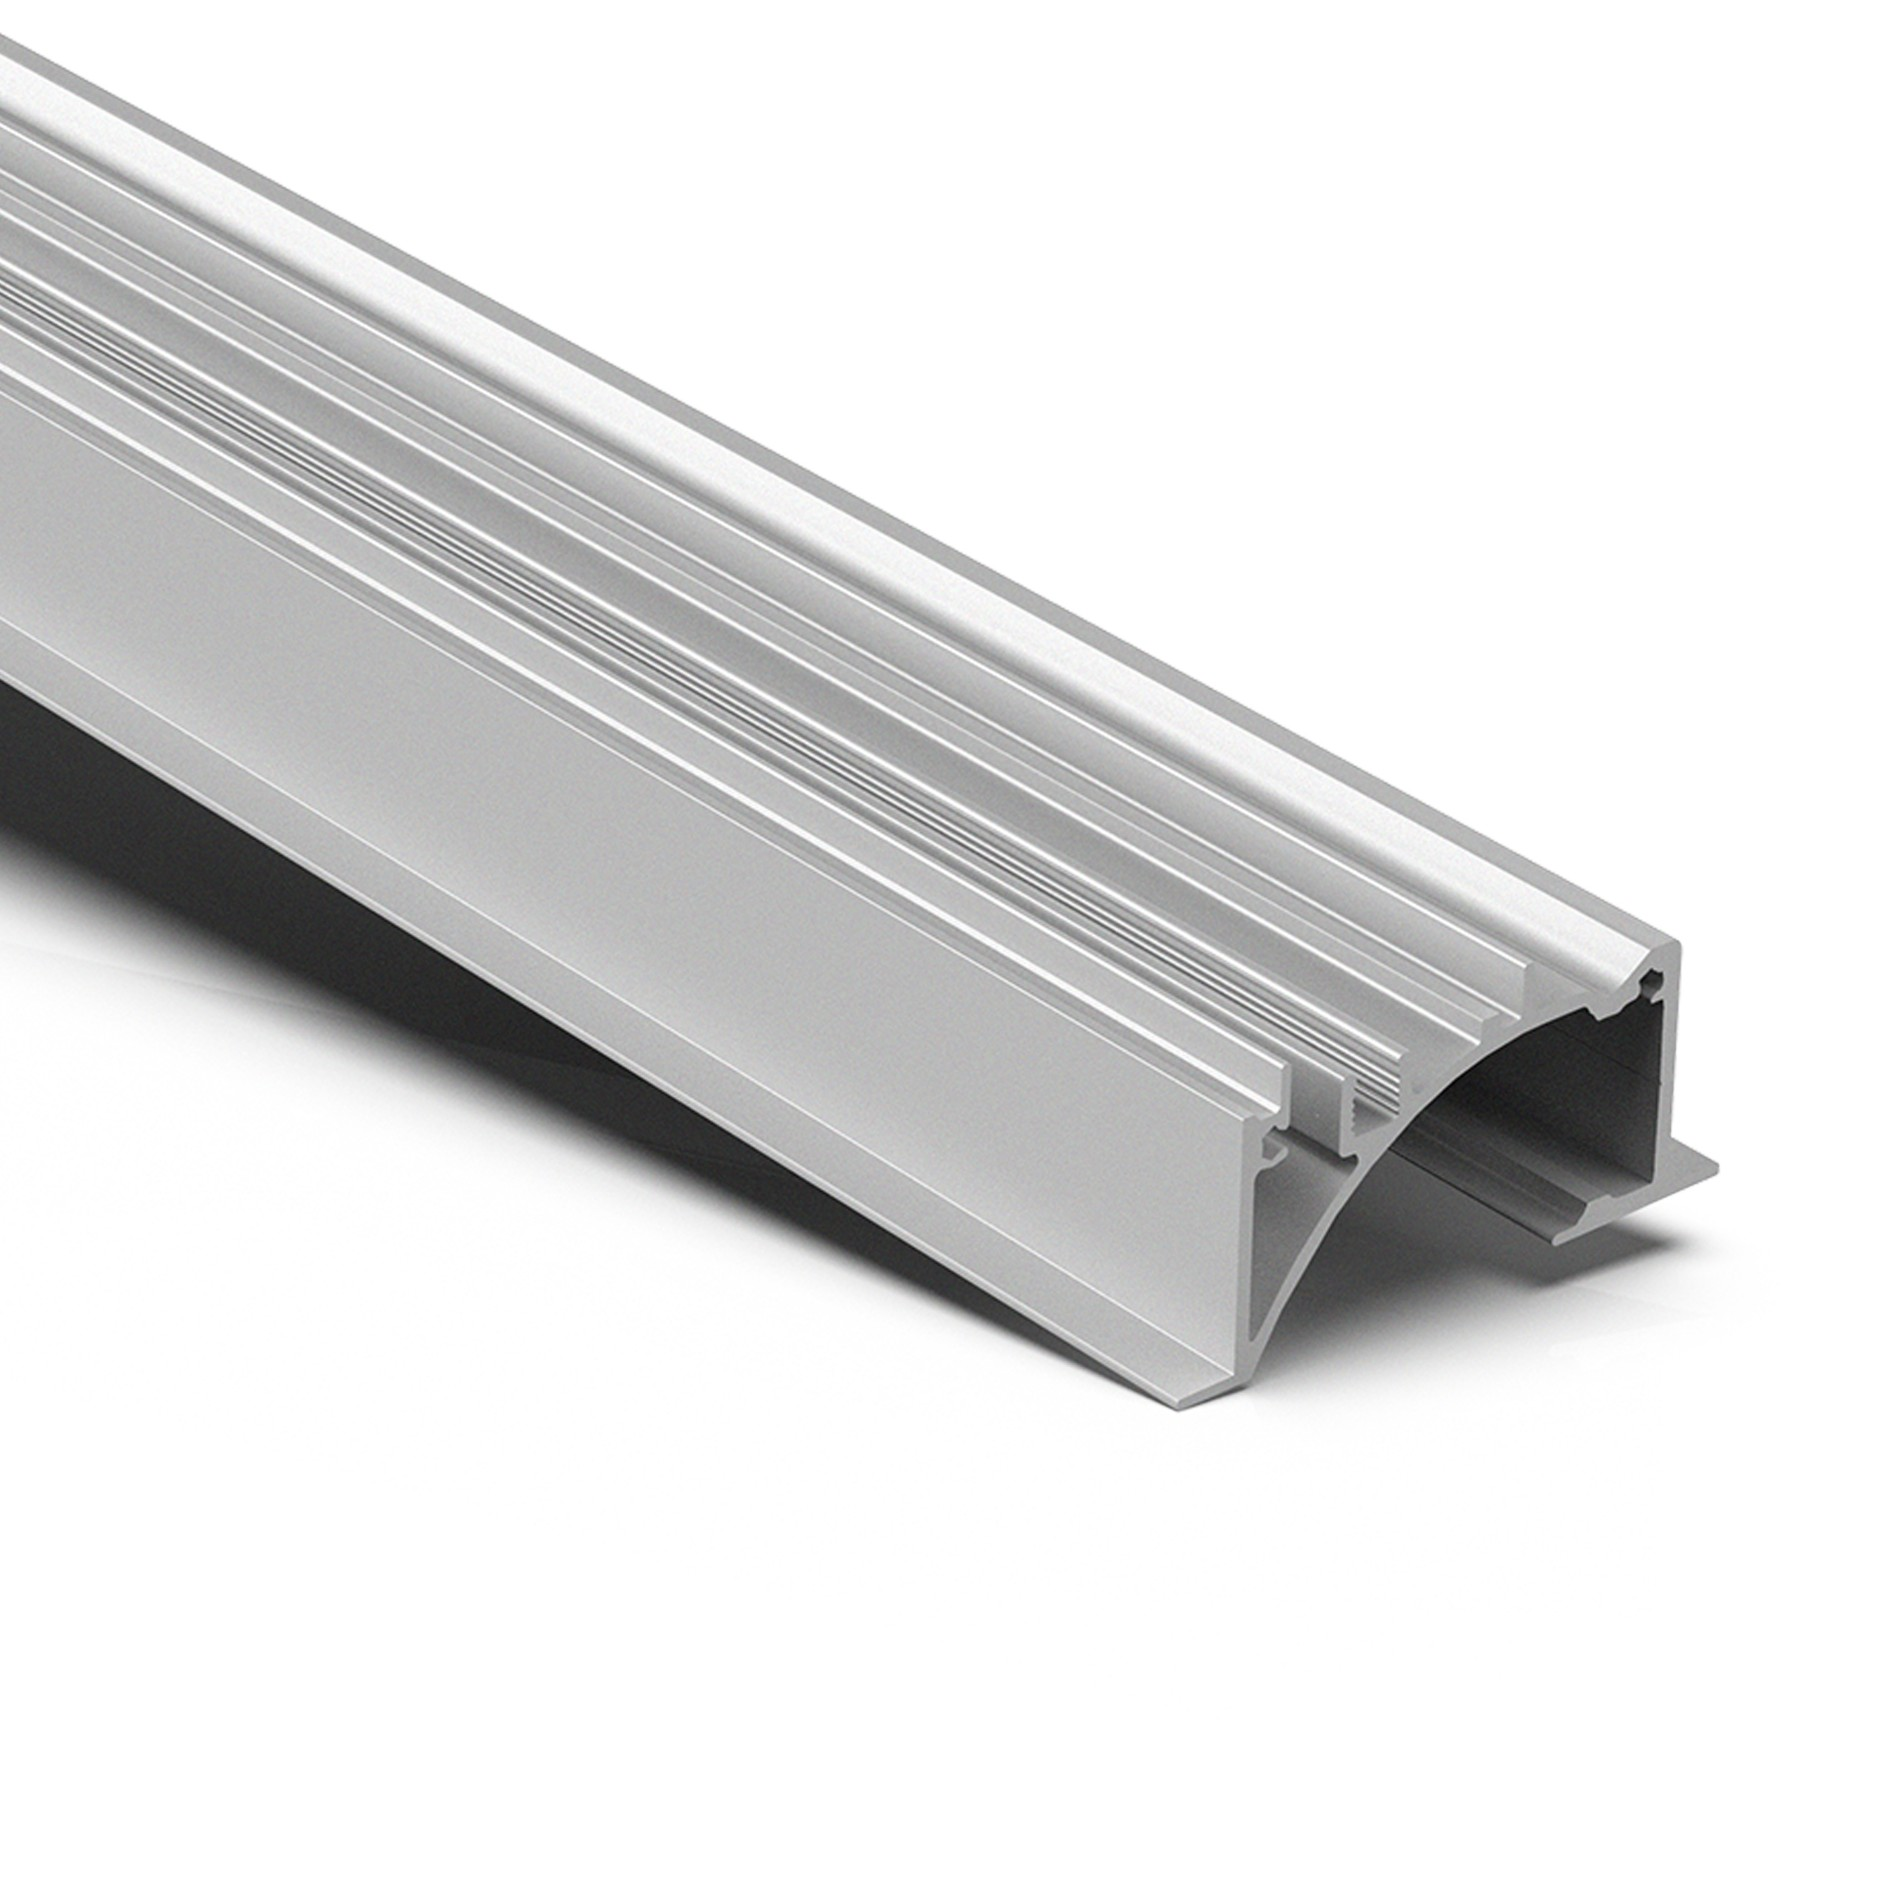 AW1-50 Indirect LED Linear recessed ceiling light strip profile 23.5x50mm